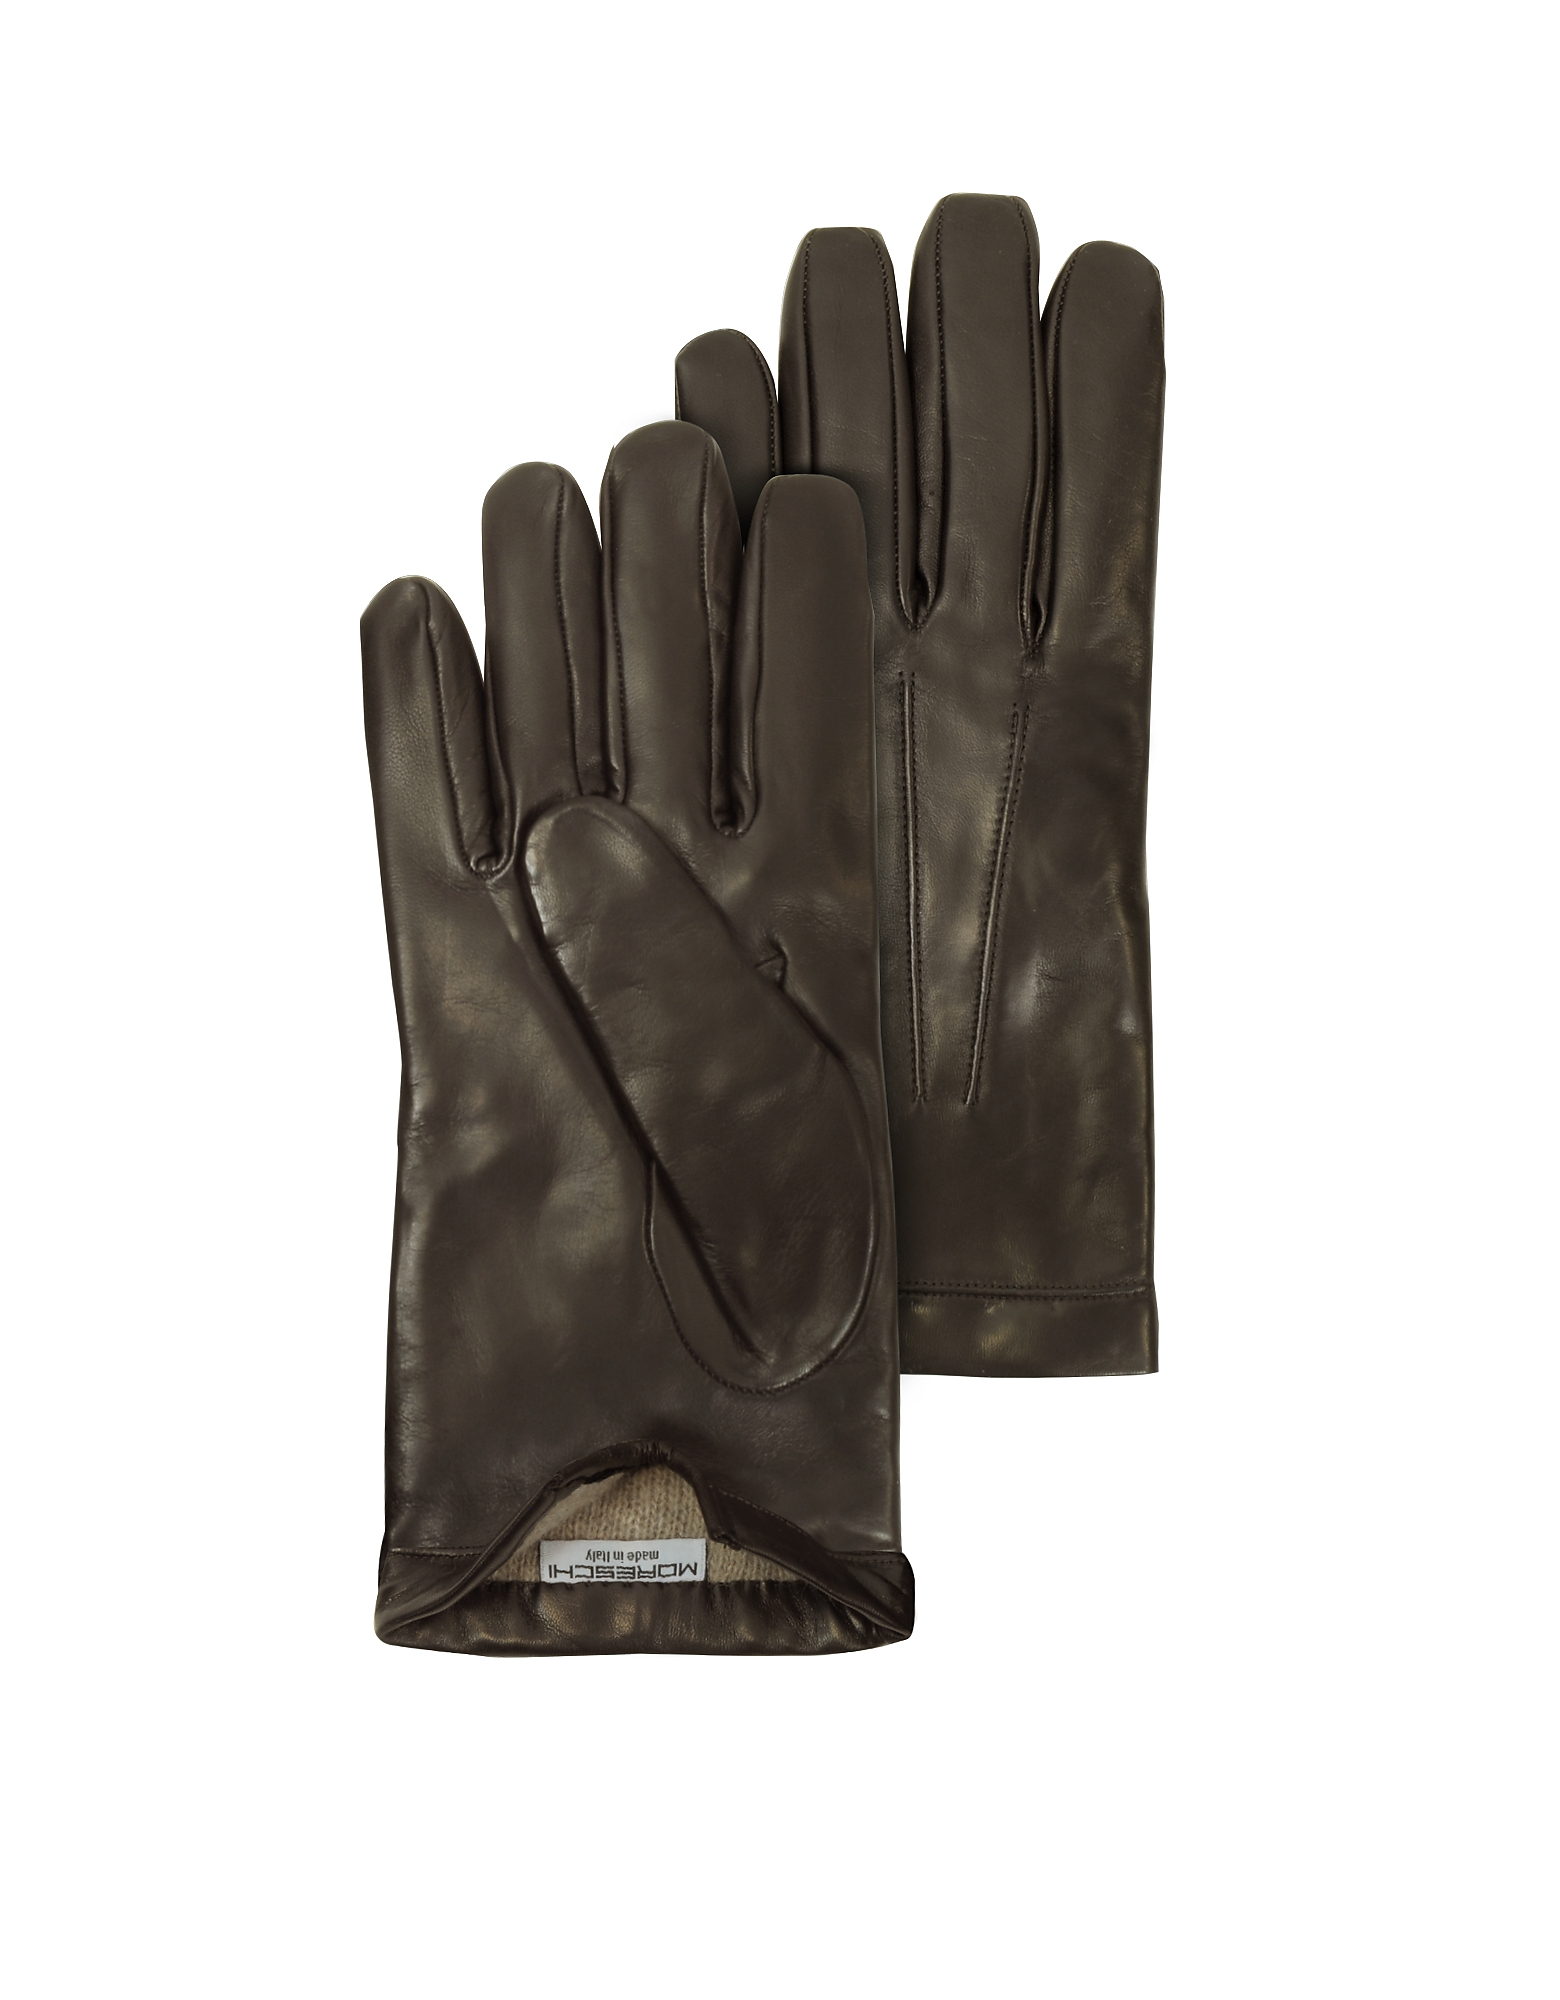 Siberia Dark Brown Leather Men's Gloves w/Cashmere Lining от Forzieri.com INT